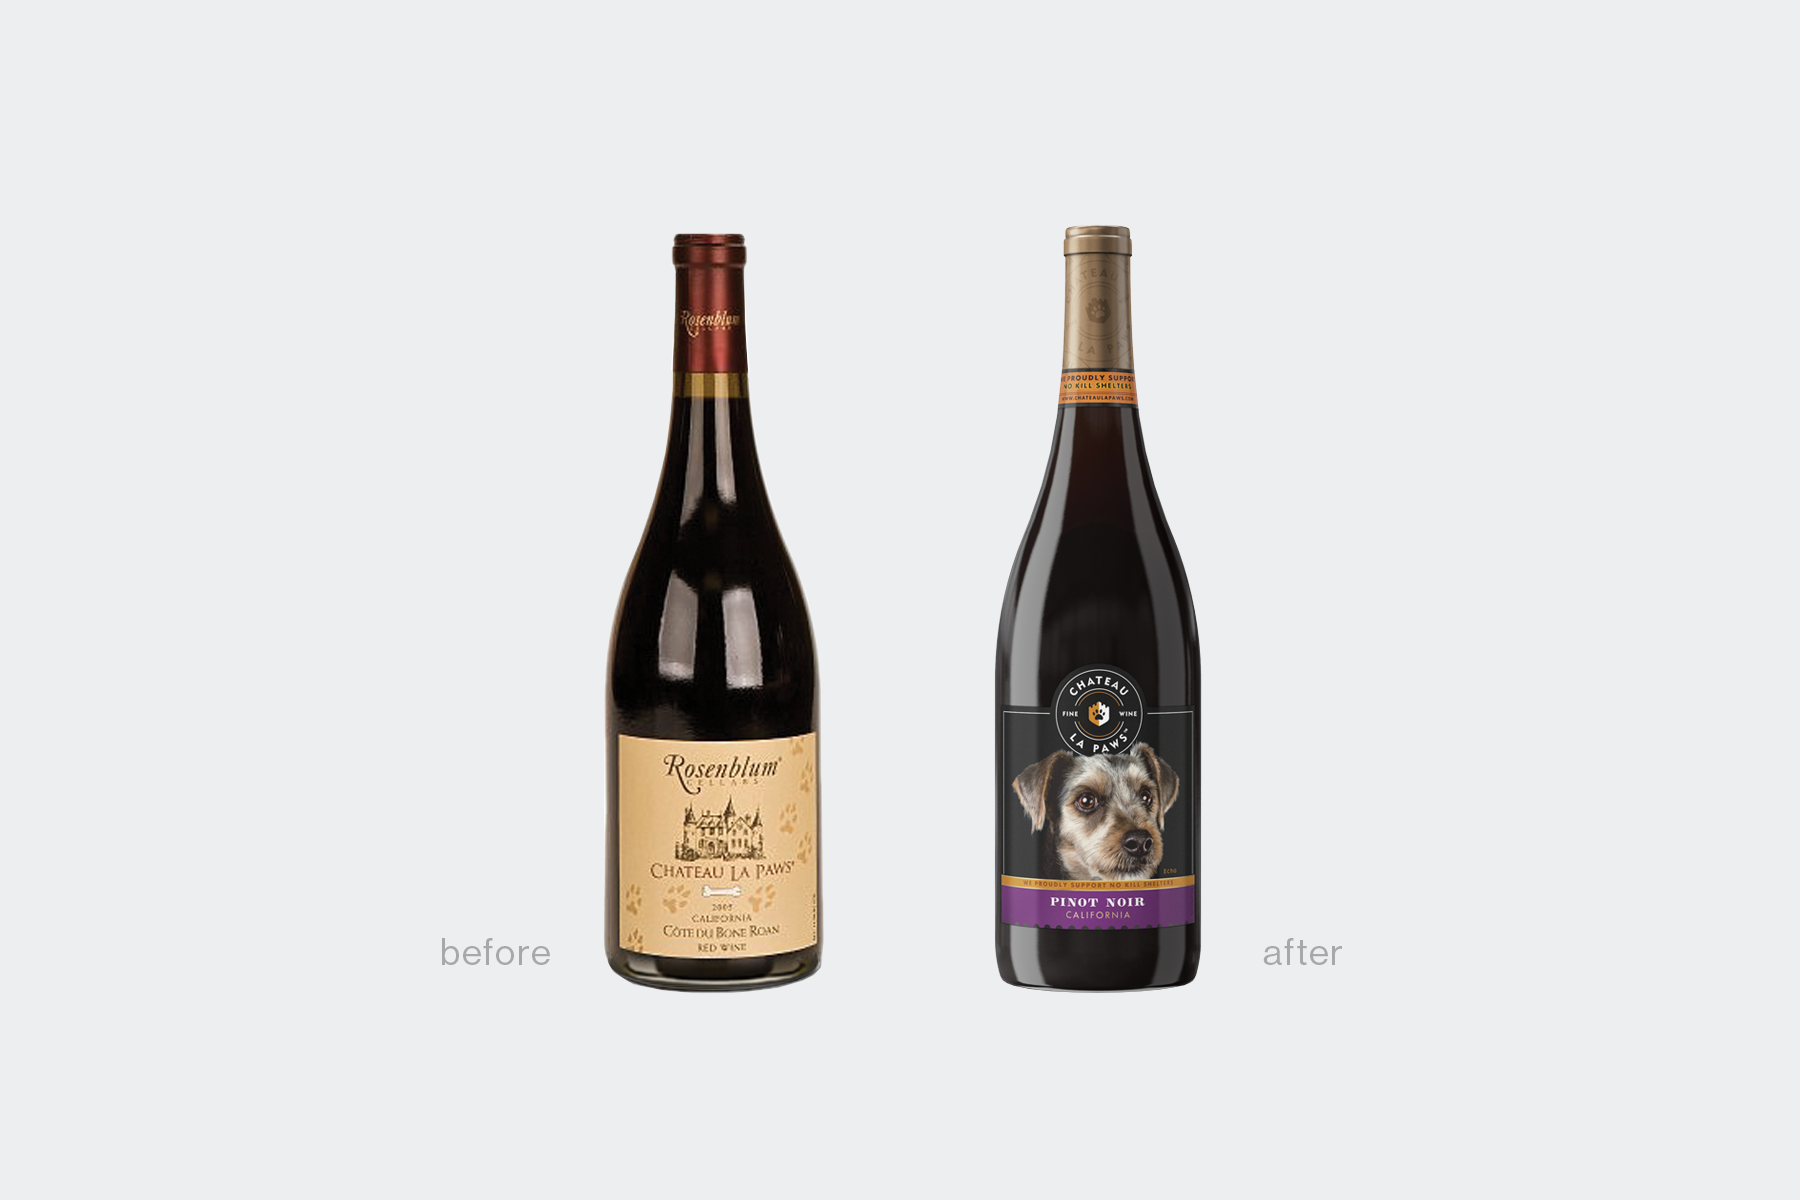 Chateau La Paws Wine redesign before and after